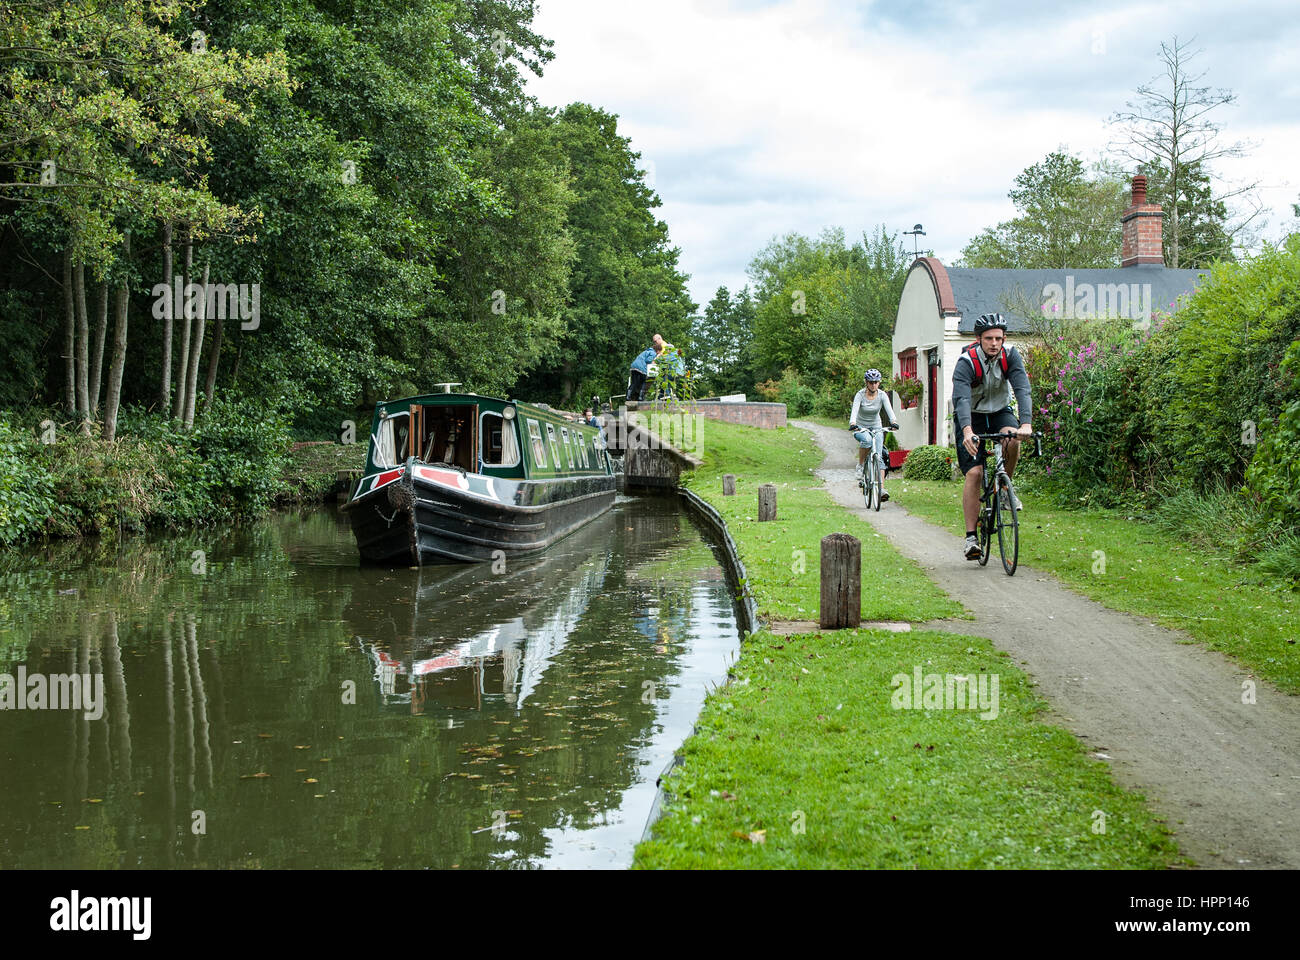 A narrowboat leaves Lock Number 28 on the Stratford upon Avon Canal, Warwickshire, England UK. - Stock Image